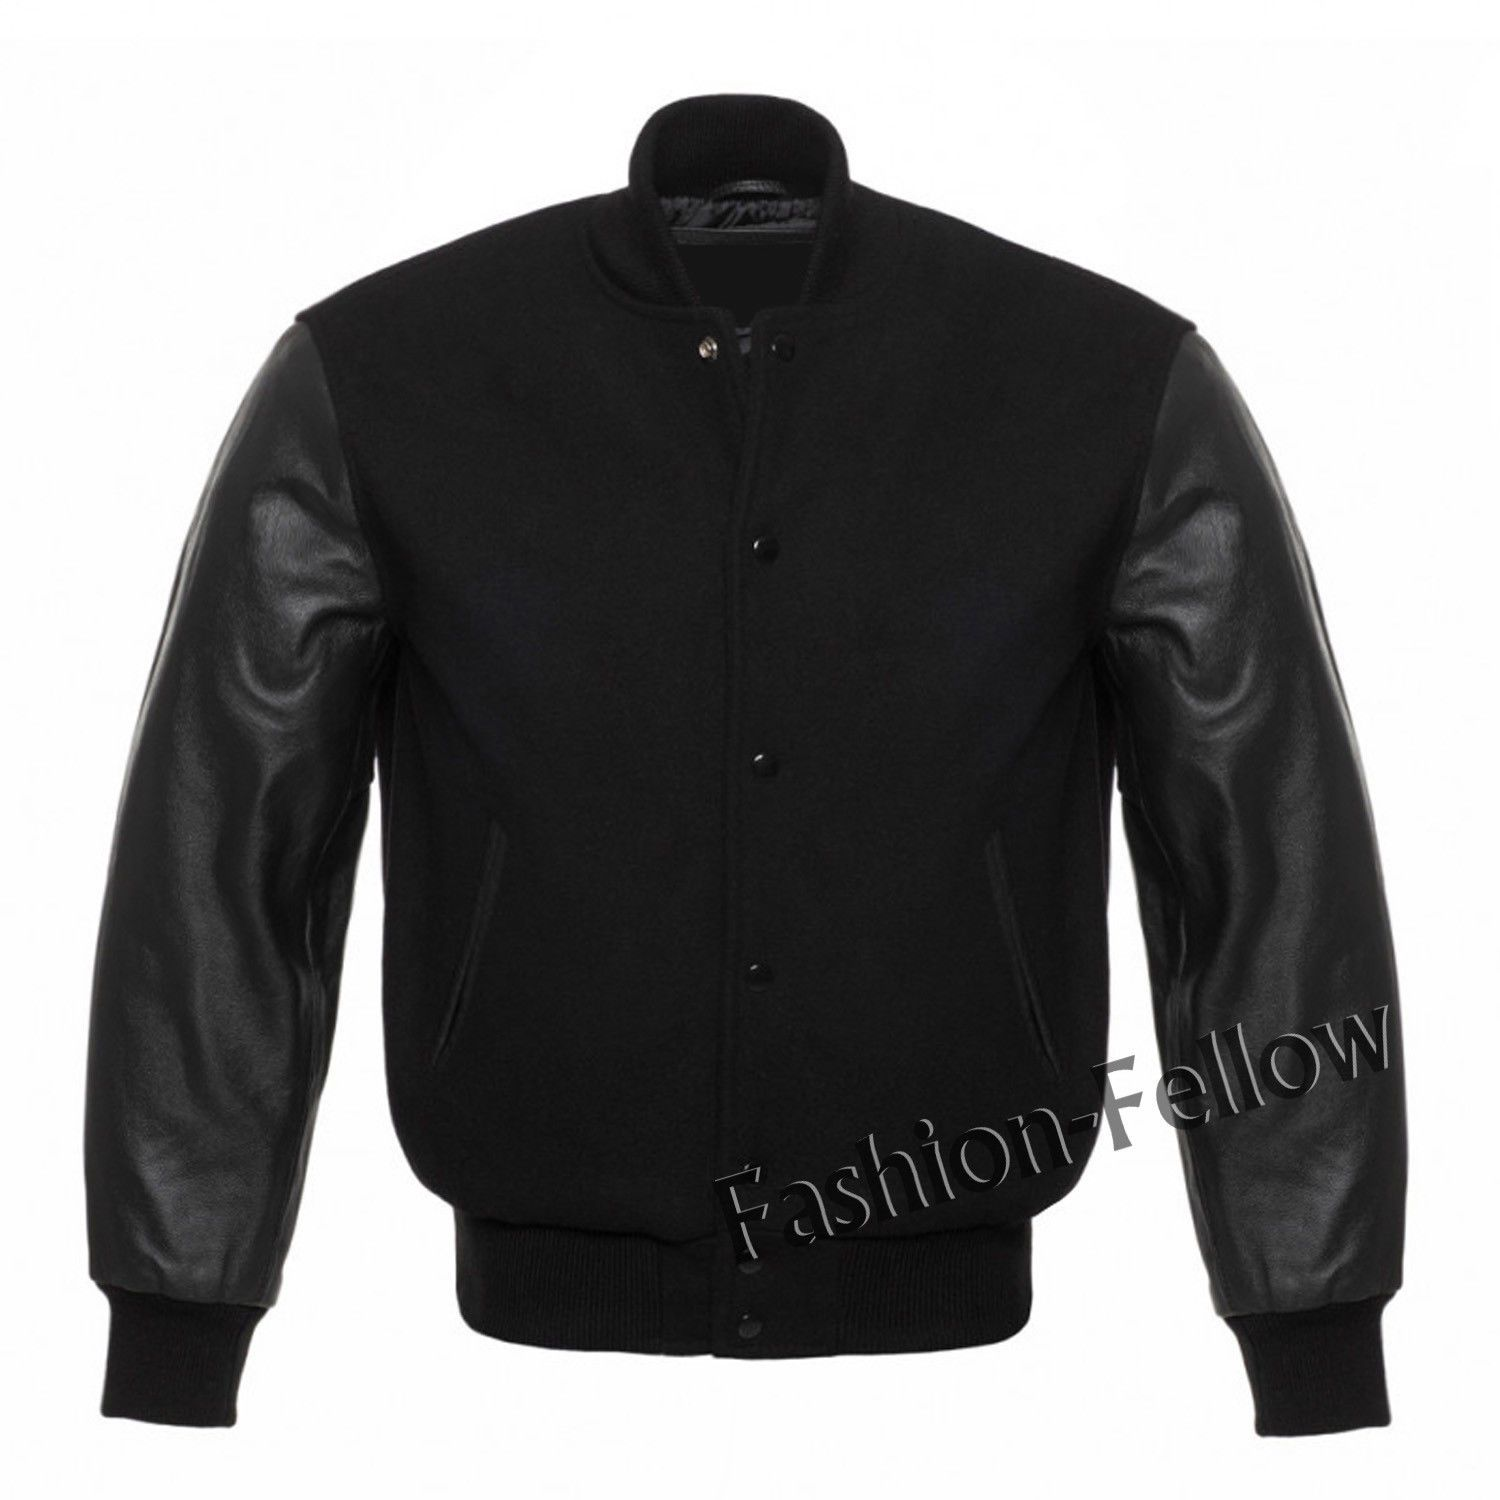 Classic Varsity Letterman bomber jacket Black Wool Body